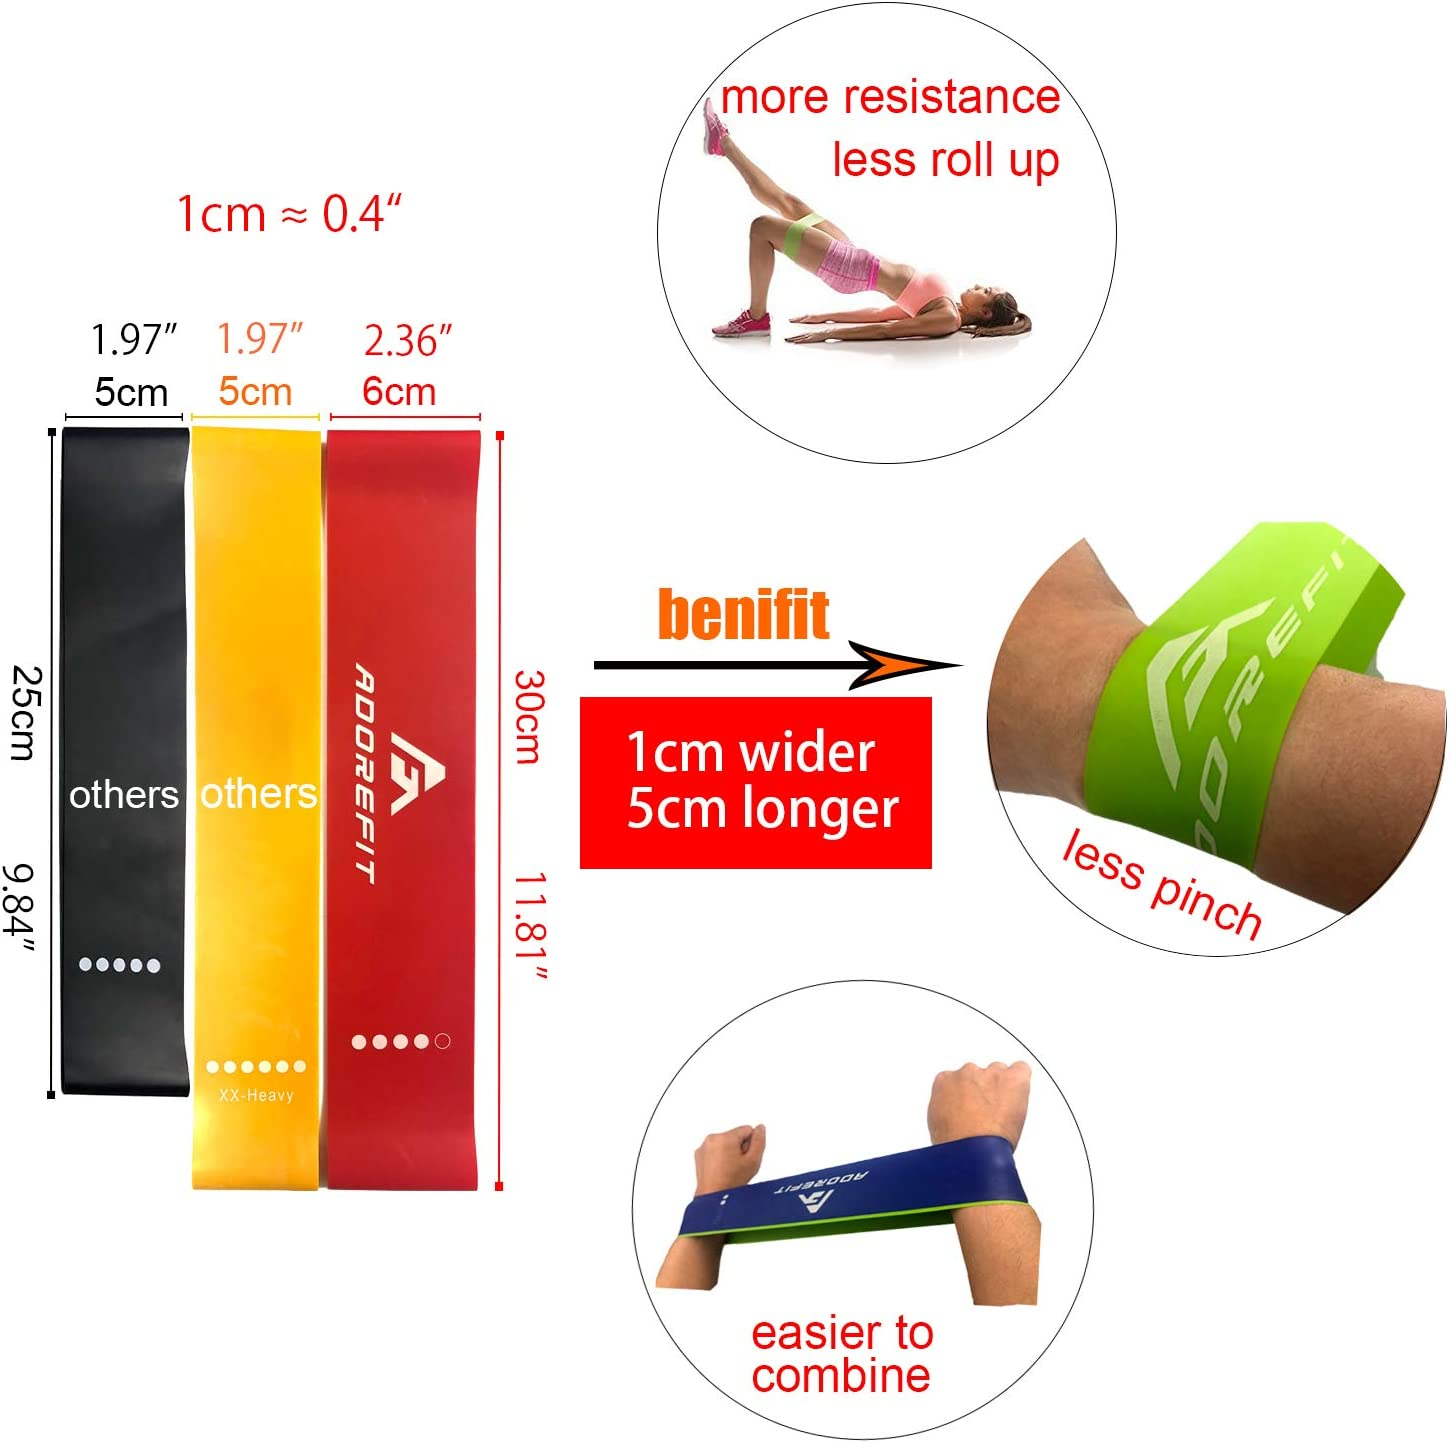 AdoreFit Resistance Band Exercise Loops Upgraded Nature Latex Elastic Bands for Workout,Fitness,Home Gym,Crossfit,Pilates,Stretch,Yoga,Rehabilitation with Printed Manual,Video Guide /& Bag Rehabilitation with Printed Instruction